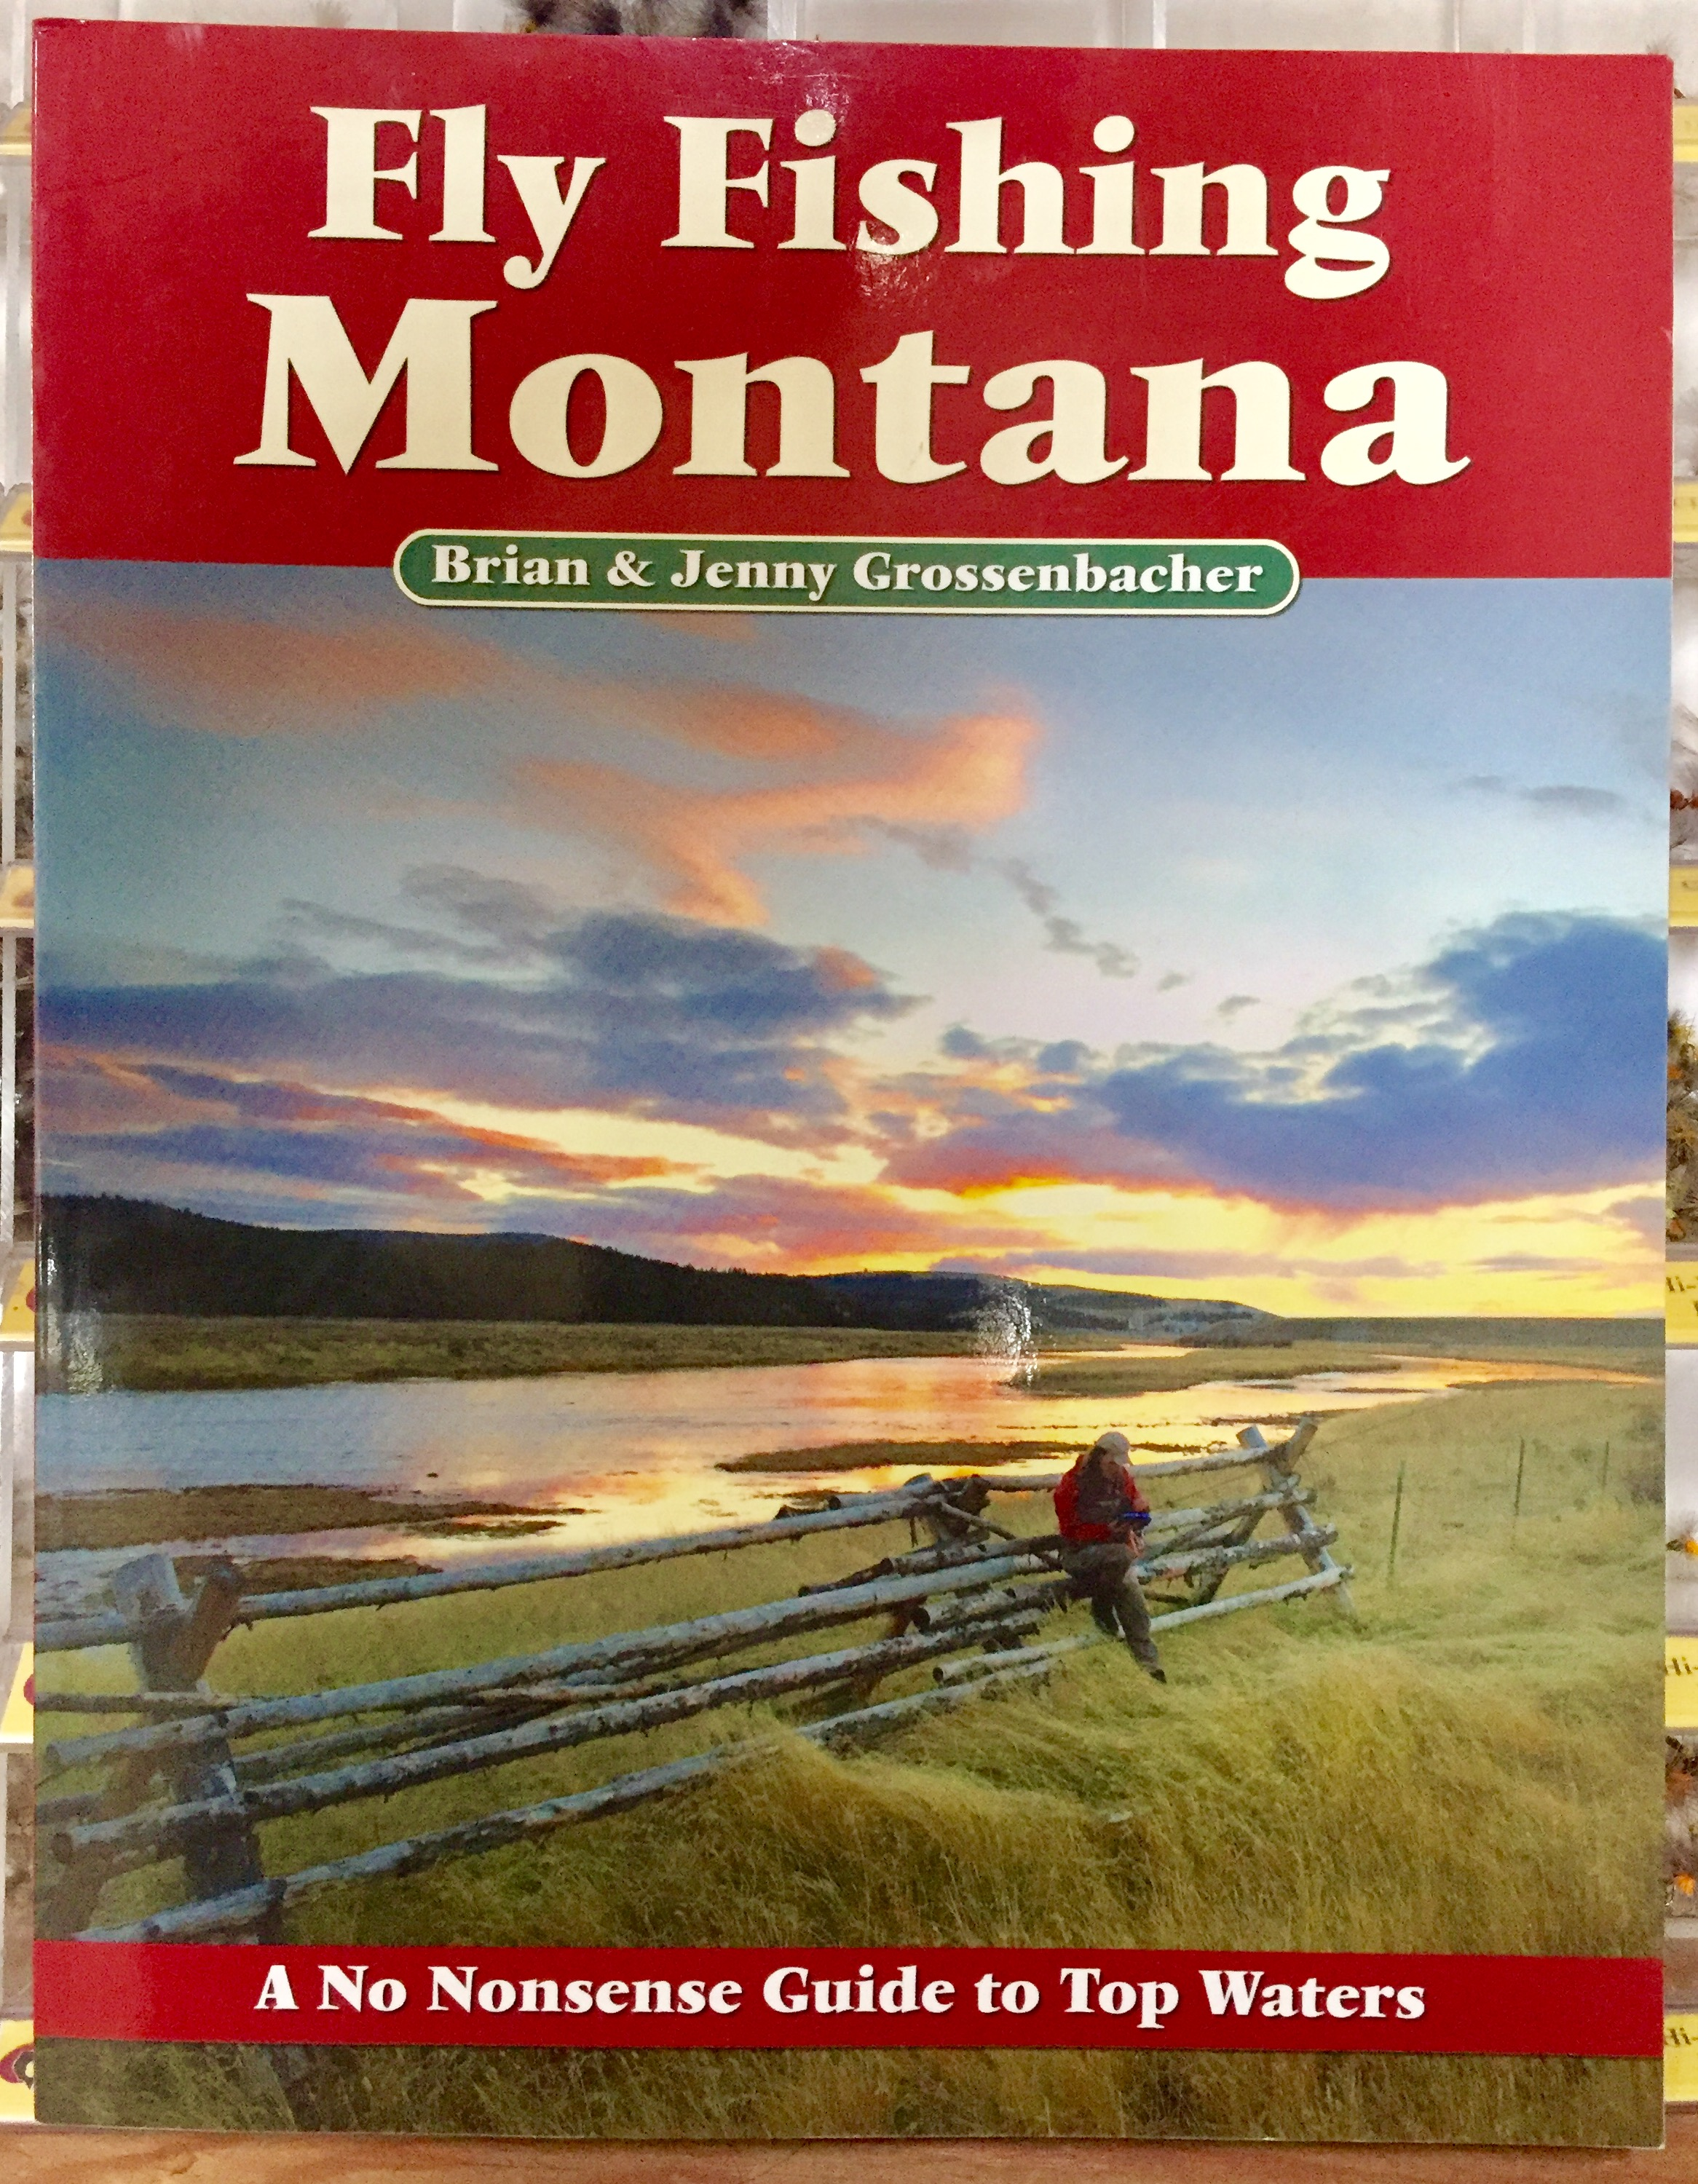 Fly fishing montana a no nonsense guide by brian and jenny for Fly fishing book